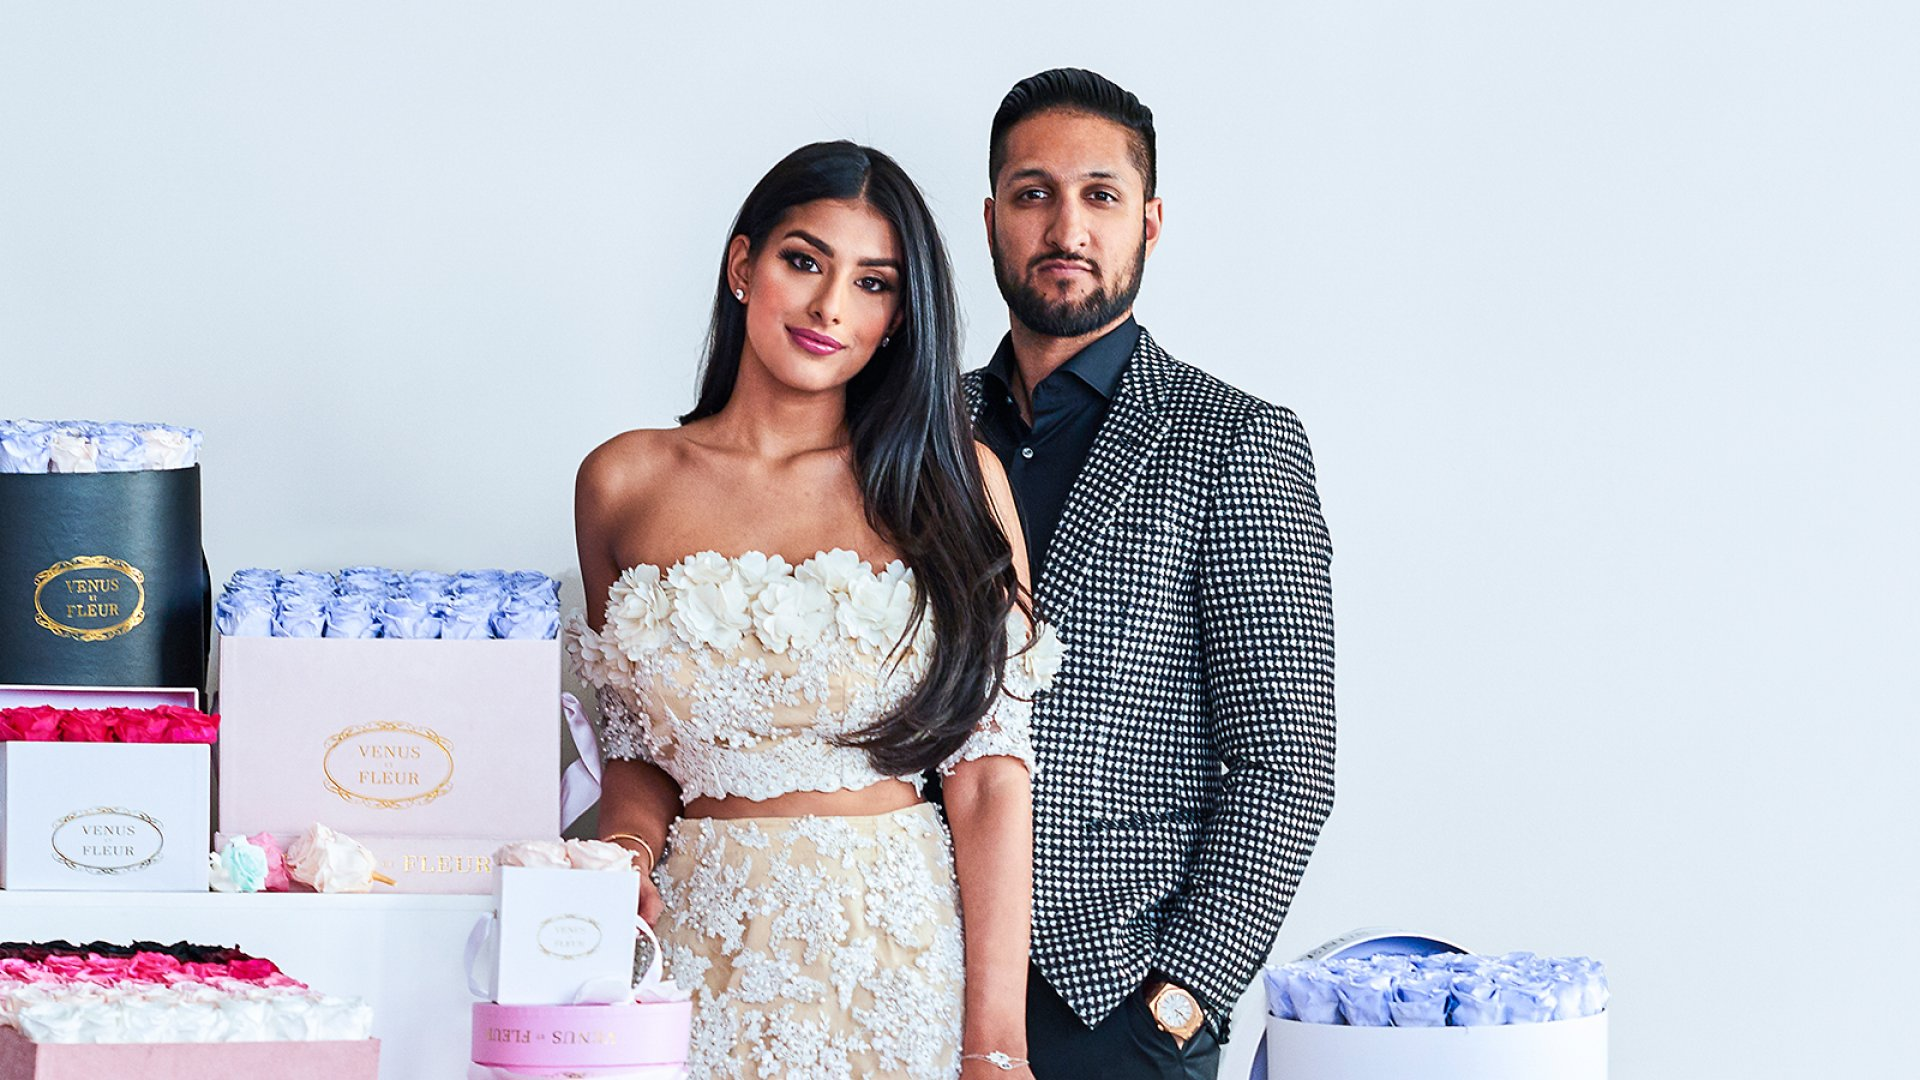 Venus Et Fleur co-founders Seema Bansal and Sunny Chadha.